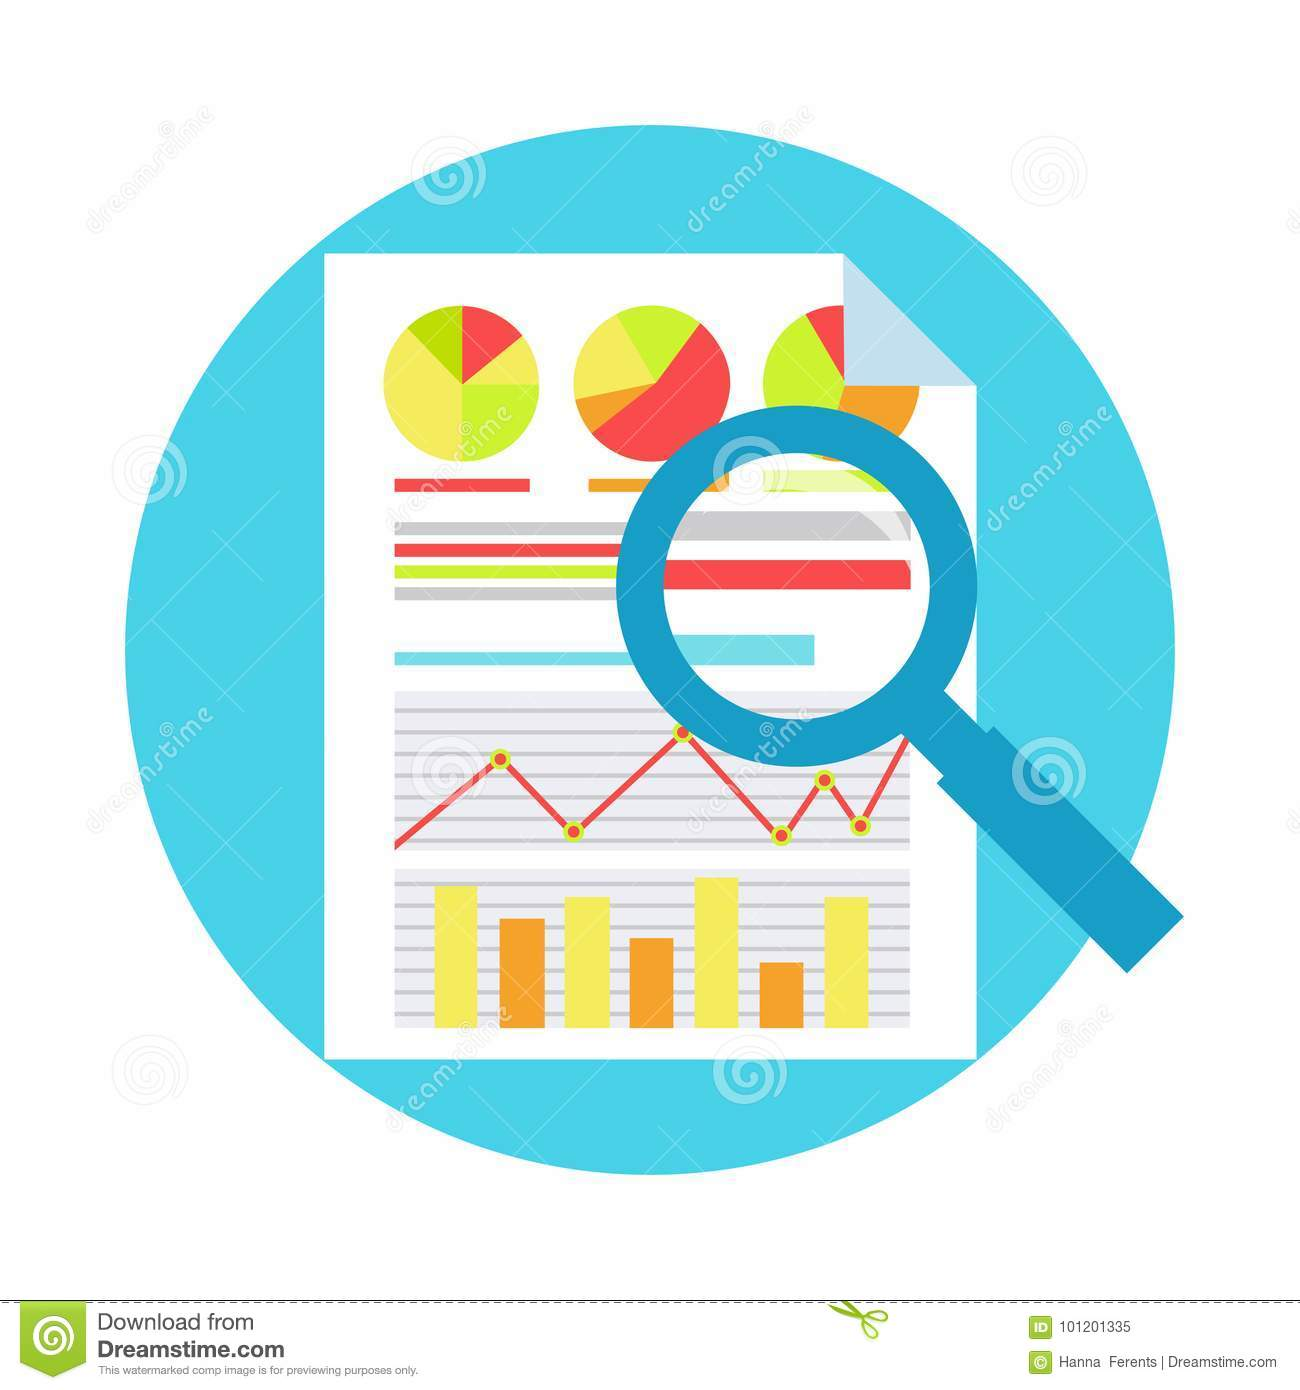 ROI Measurment. Return on of investment. Documents with graphs and calculations, and magnifying glass